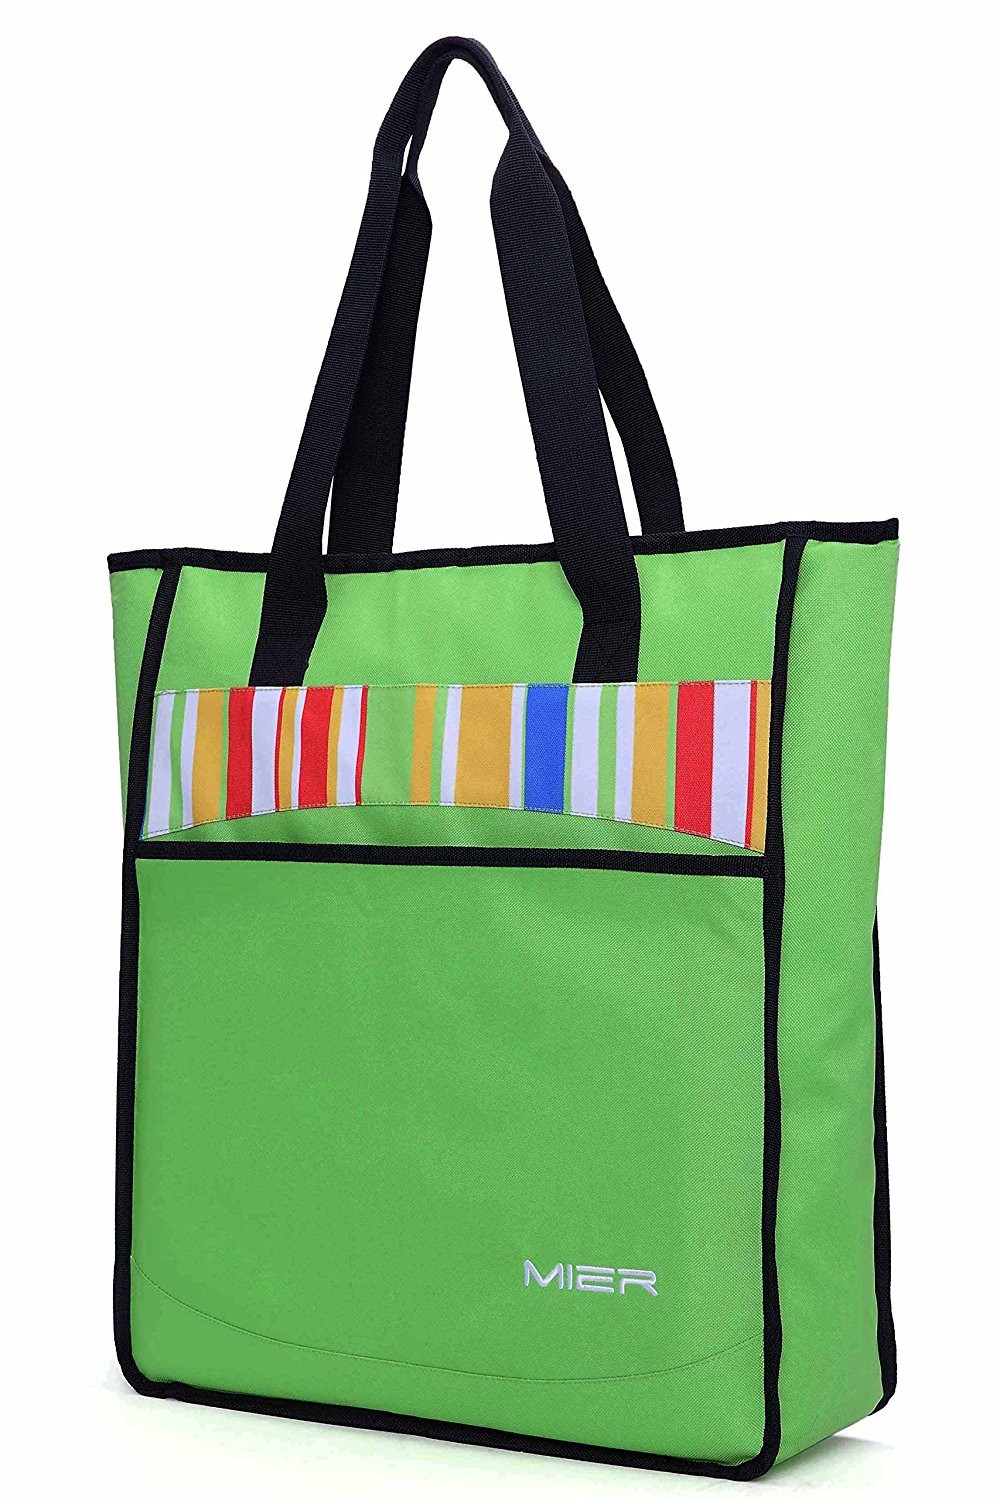 Insulated Cooler Tote Bag Women Grocery Bag Extra Large for Shopping, Family Lunch, Car Trip, Picnic, Beach, 30L